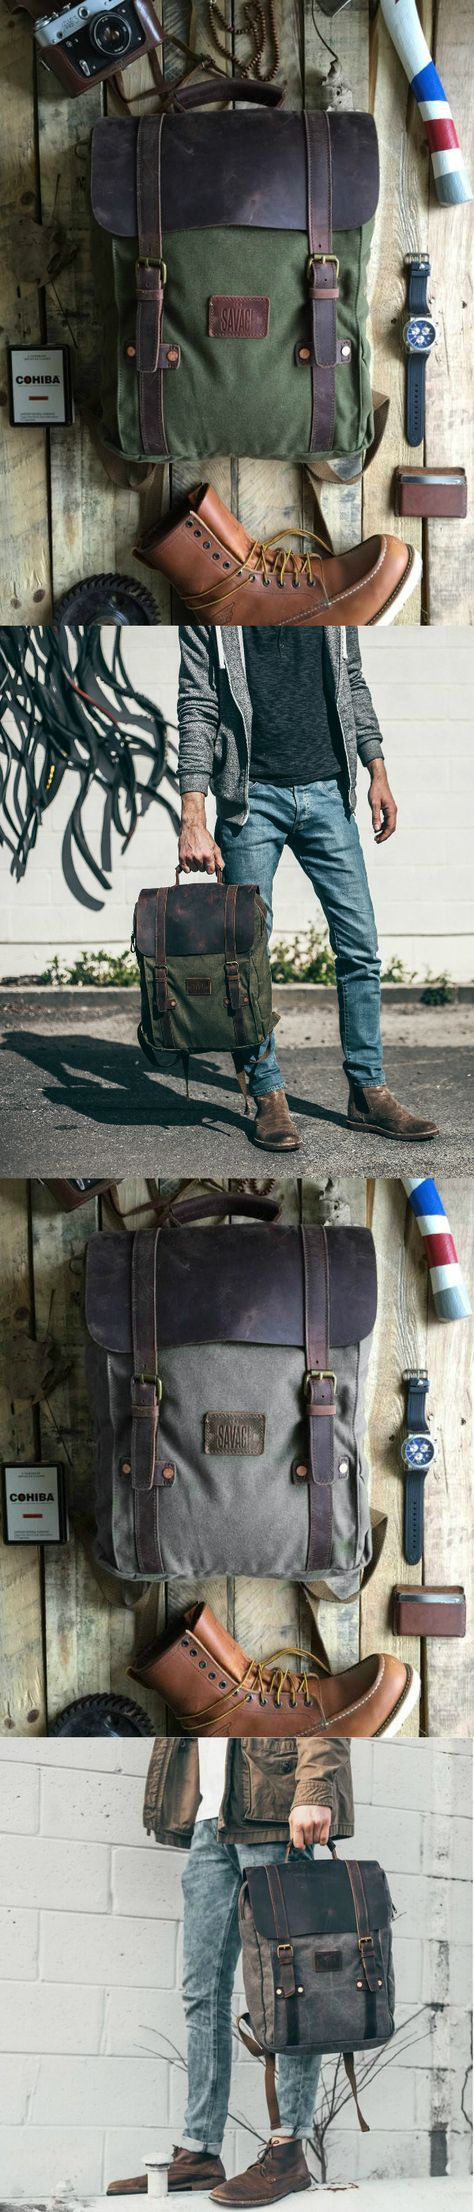 Rugged - Vintage- Hipster Backpacks By Savage Supply Co.